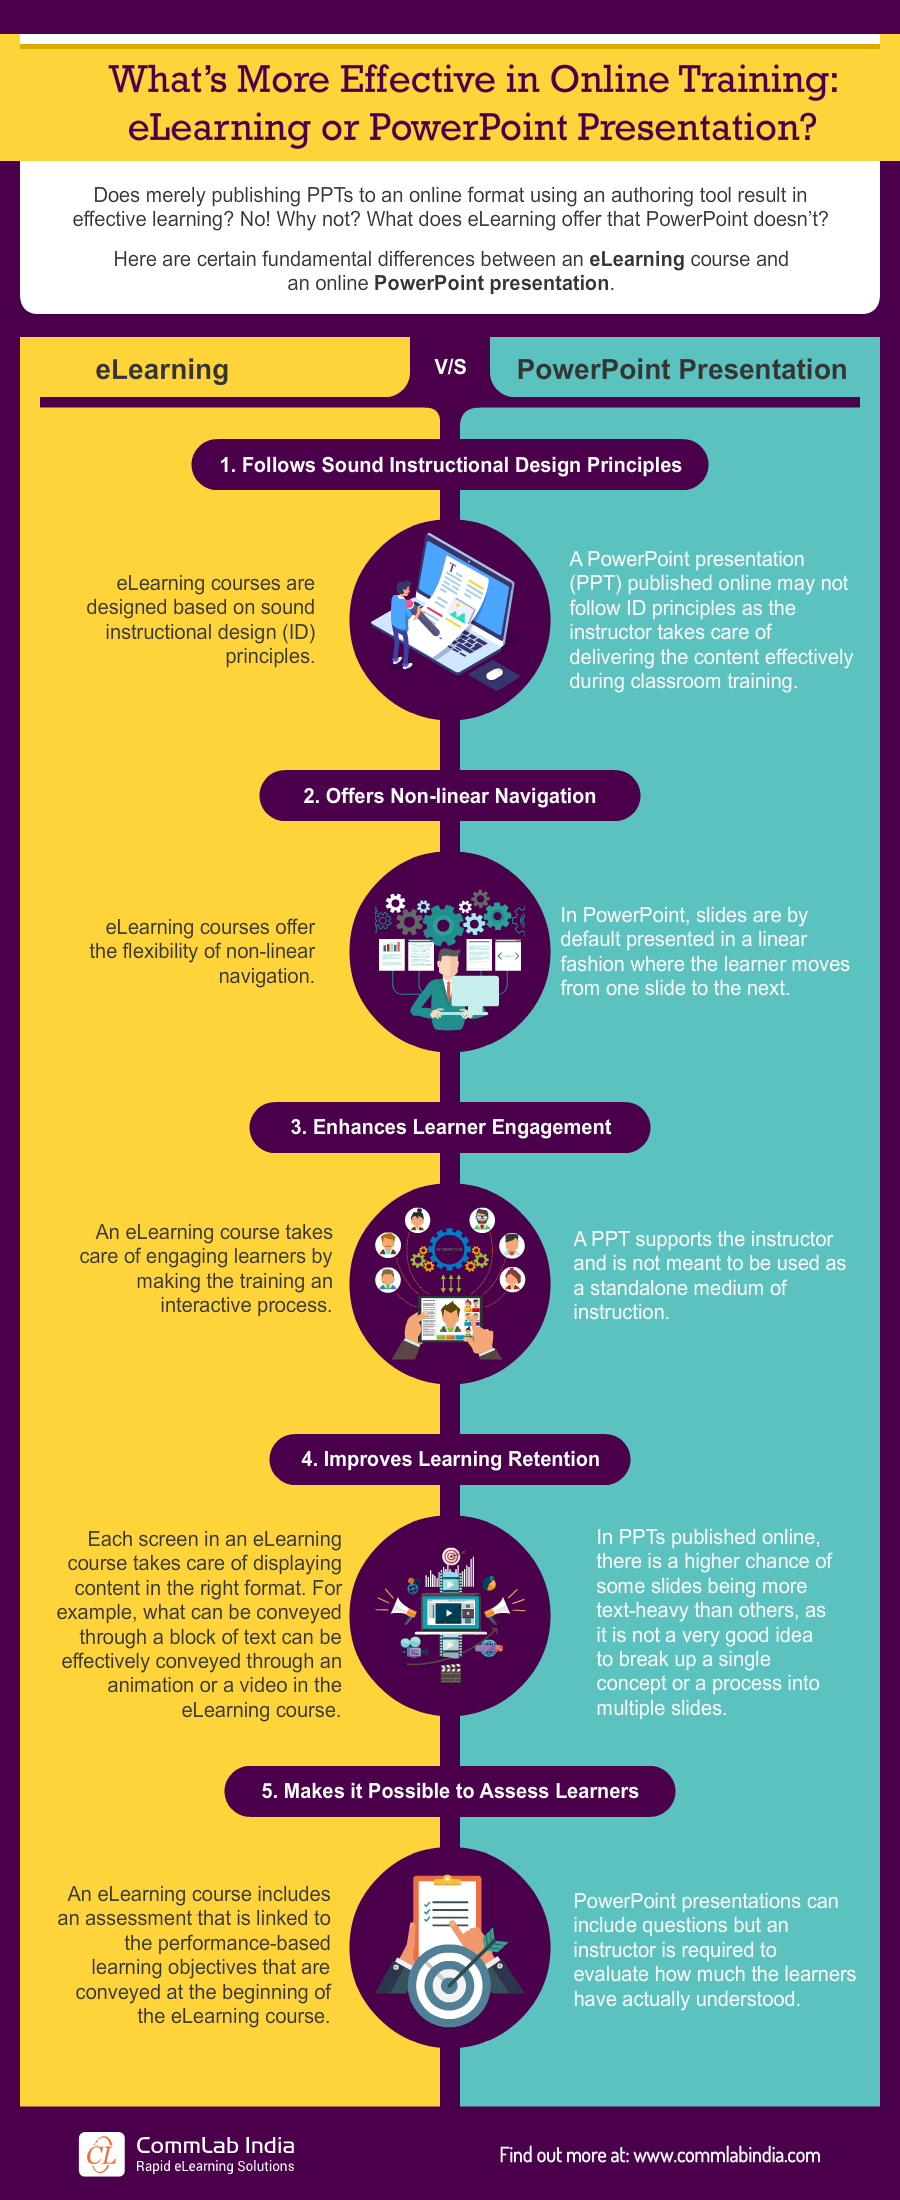 What's More Effective in Online Training: eLearning or PowerPoint Presentation [Infographic]